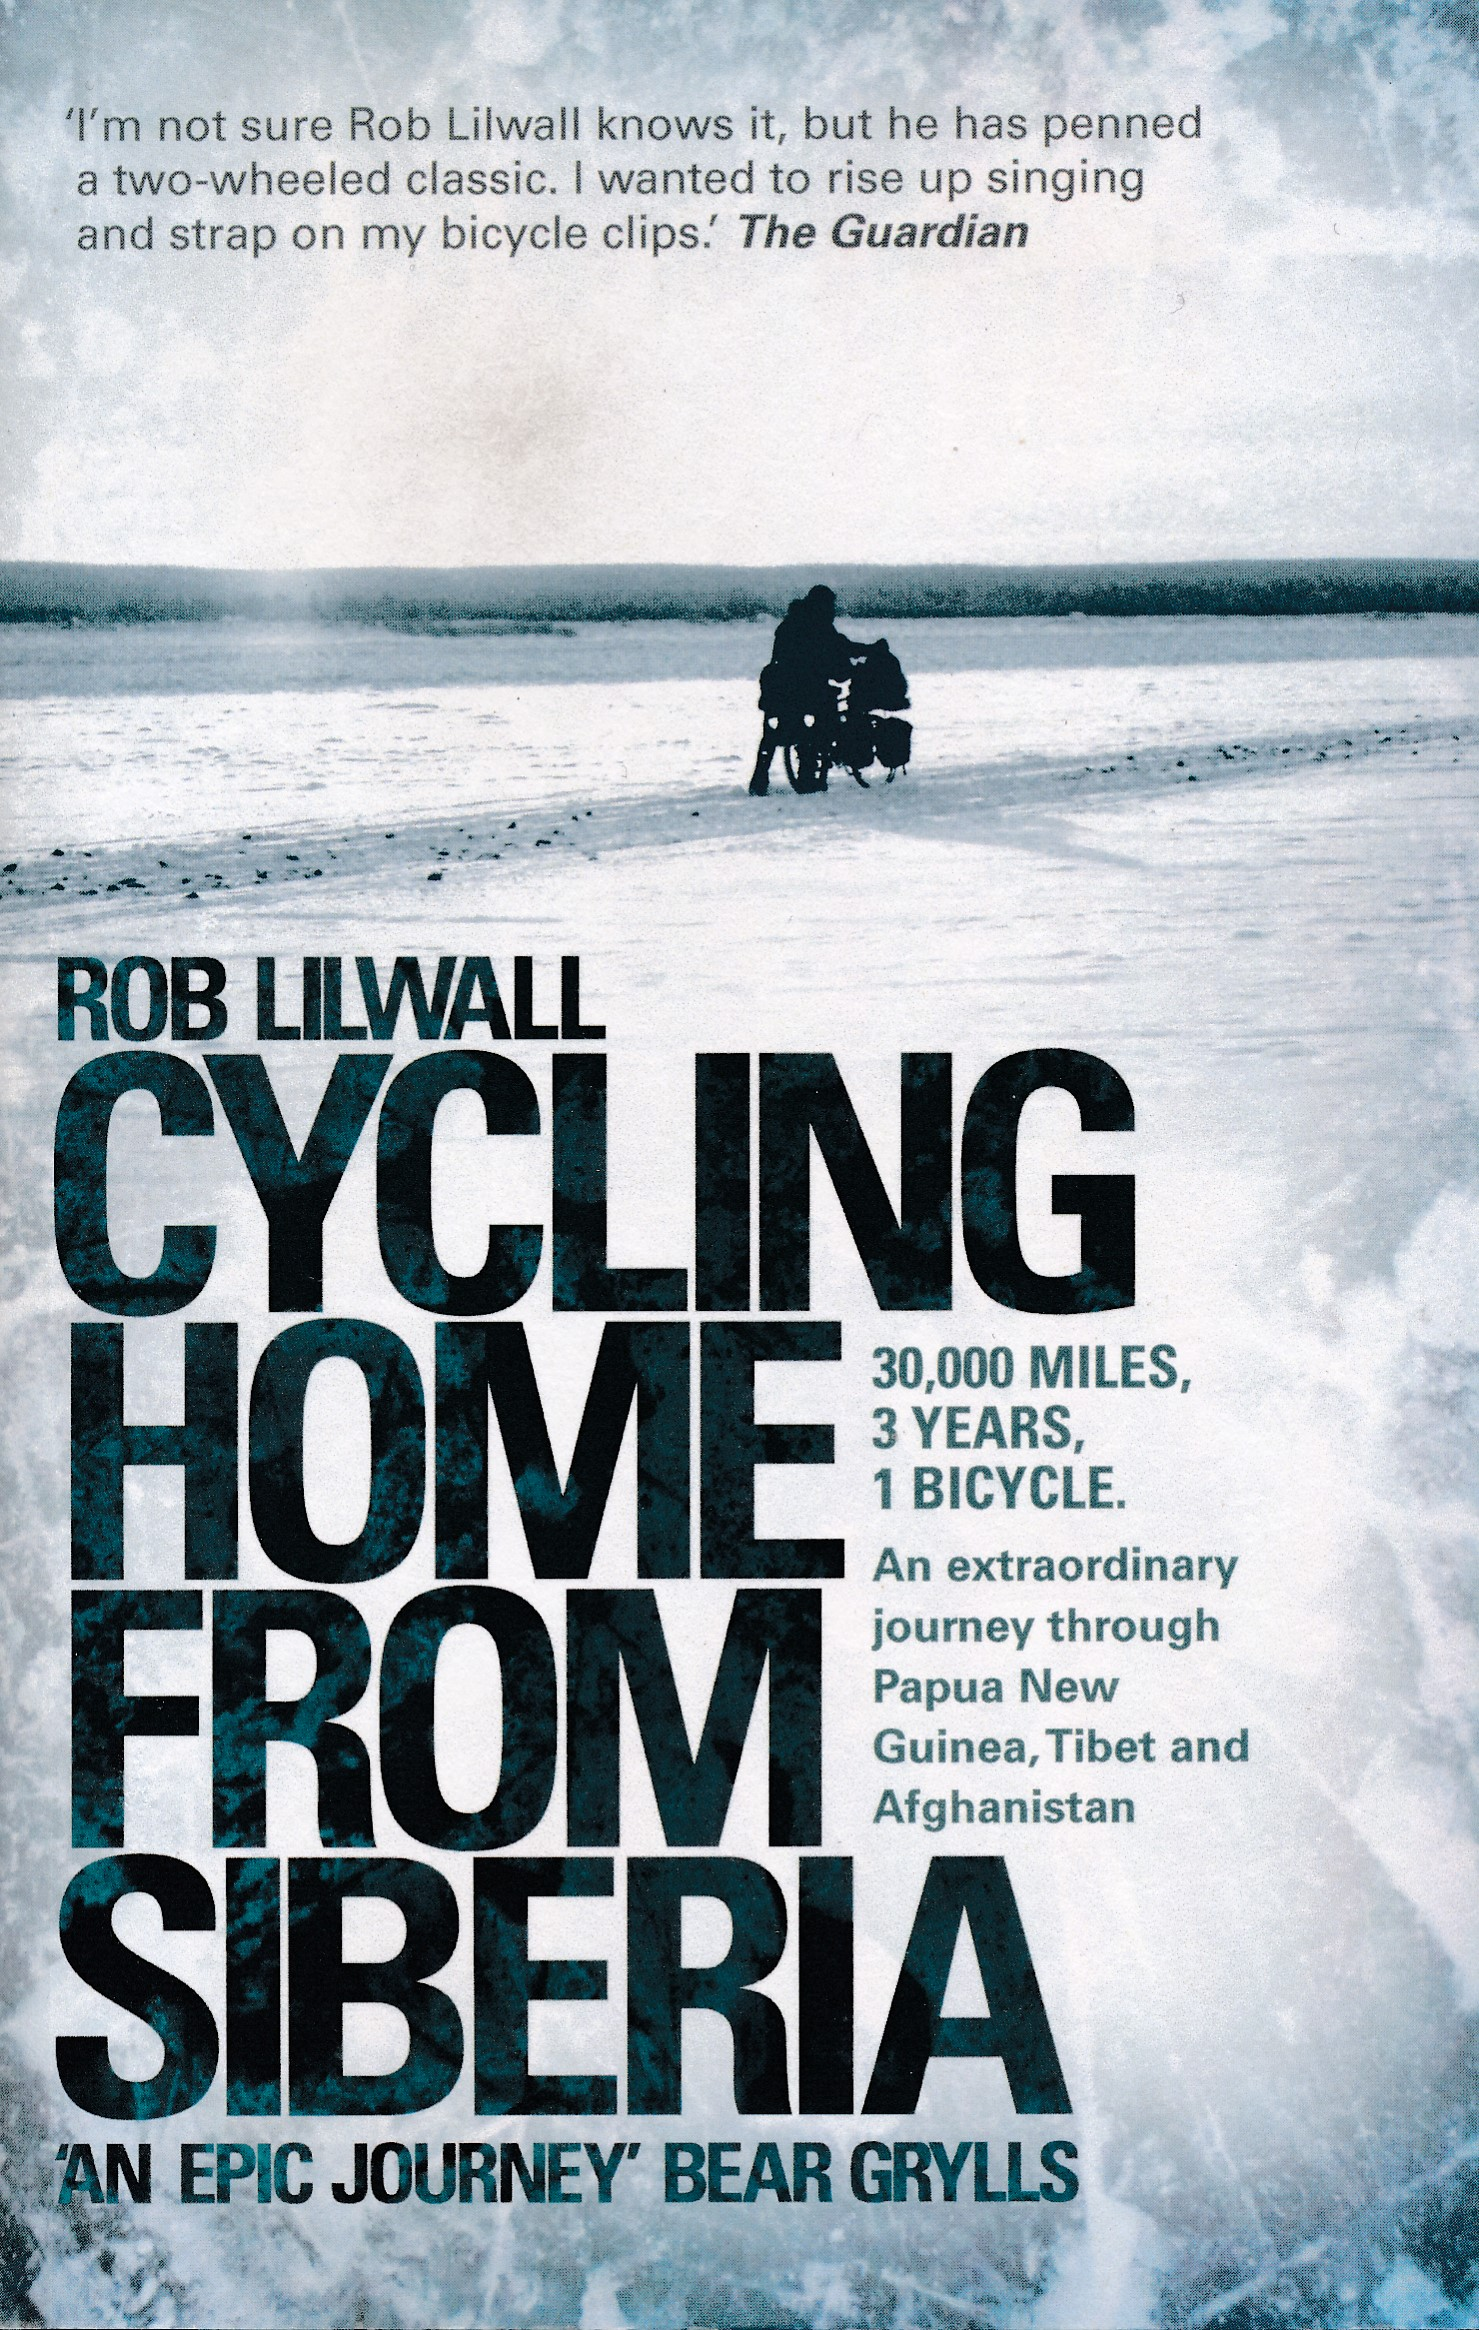 Reisverhaal Cycling Home from Siberia | Rob Lilwall <br/>€ 14.95 <br/> <a href='https://www.dezwerver.nl/reisgidsen/?tt=1554_252853_241358_&r=https%3A%2F%2Fwww.dezwerver.nl%2Fr%2Feuropa%2Frusland%2Ftrans-siberie%2Fc%2Fboeken%2Freisverhalen%2F9780340979860%2Freisverhaal-cycling-home-from-siberia-rob-lilwall%2F' target='_blank'>Meer Info</a>